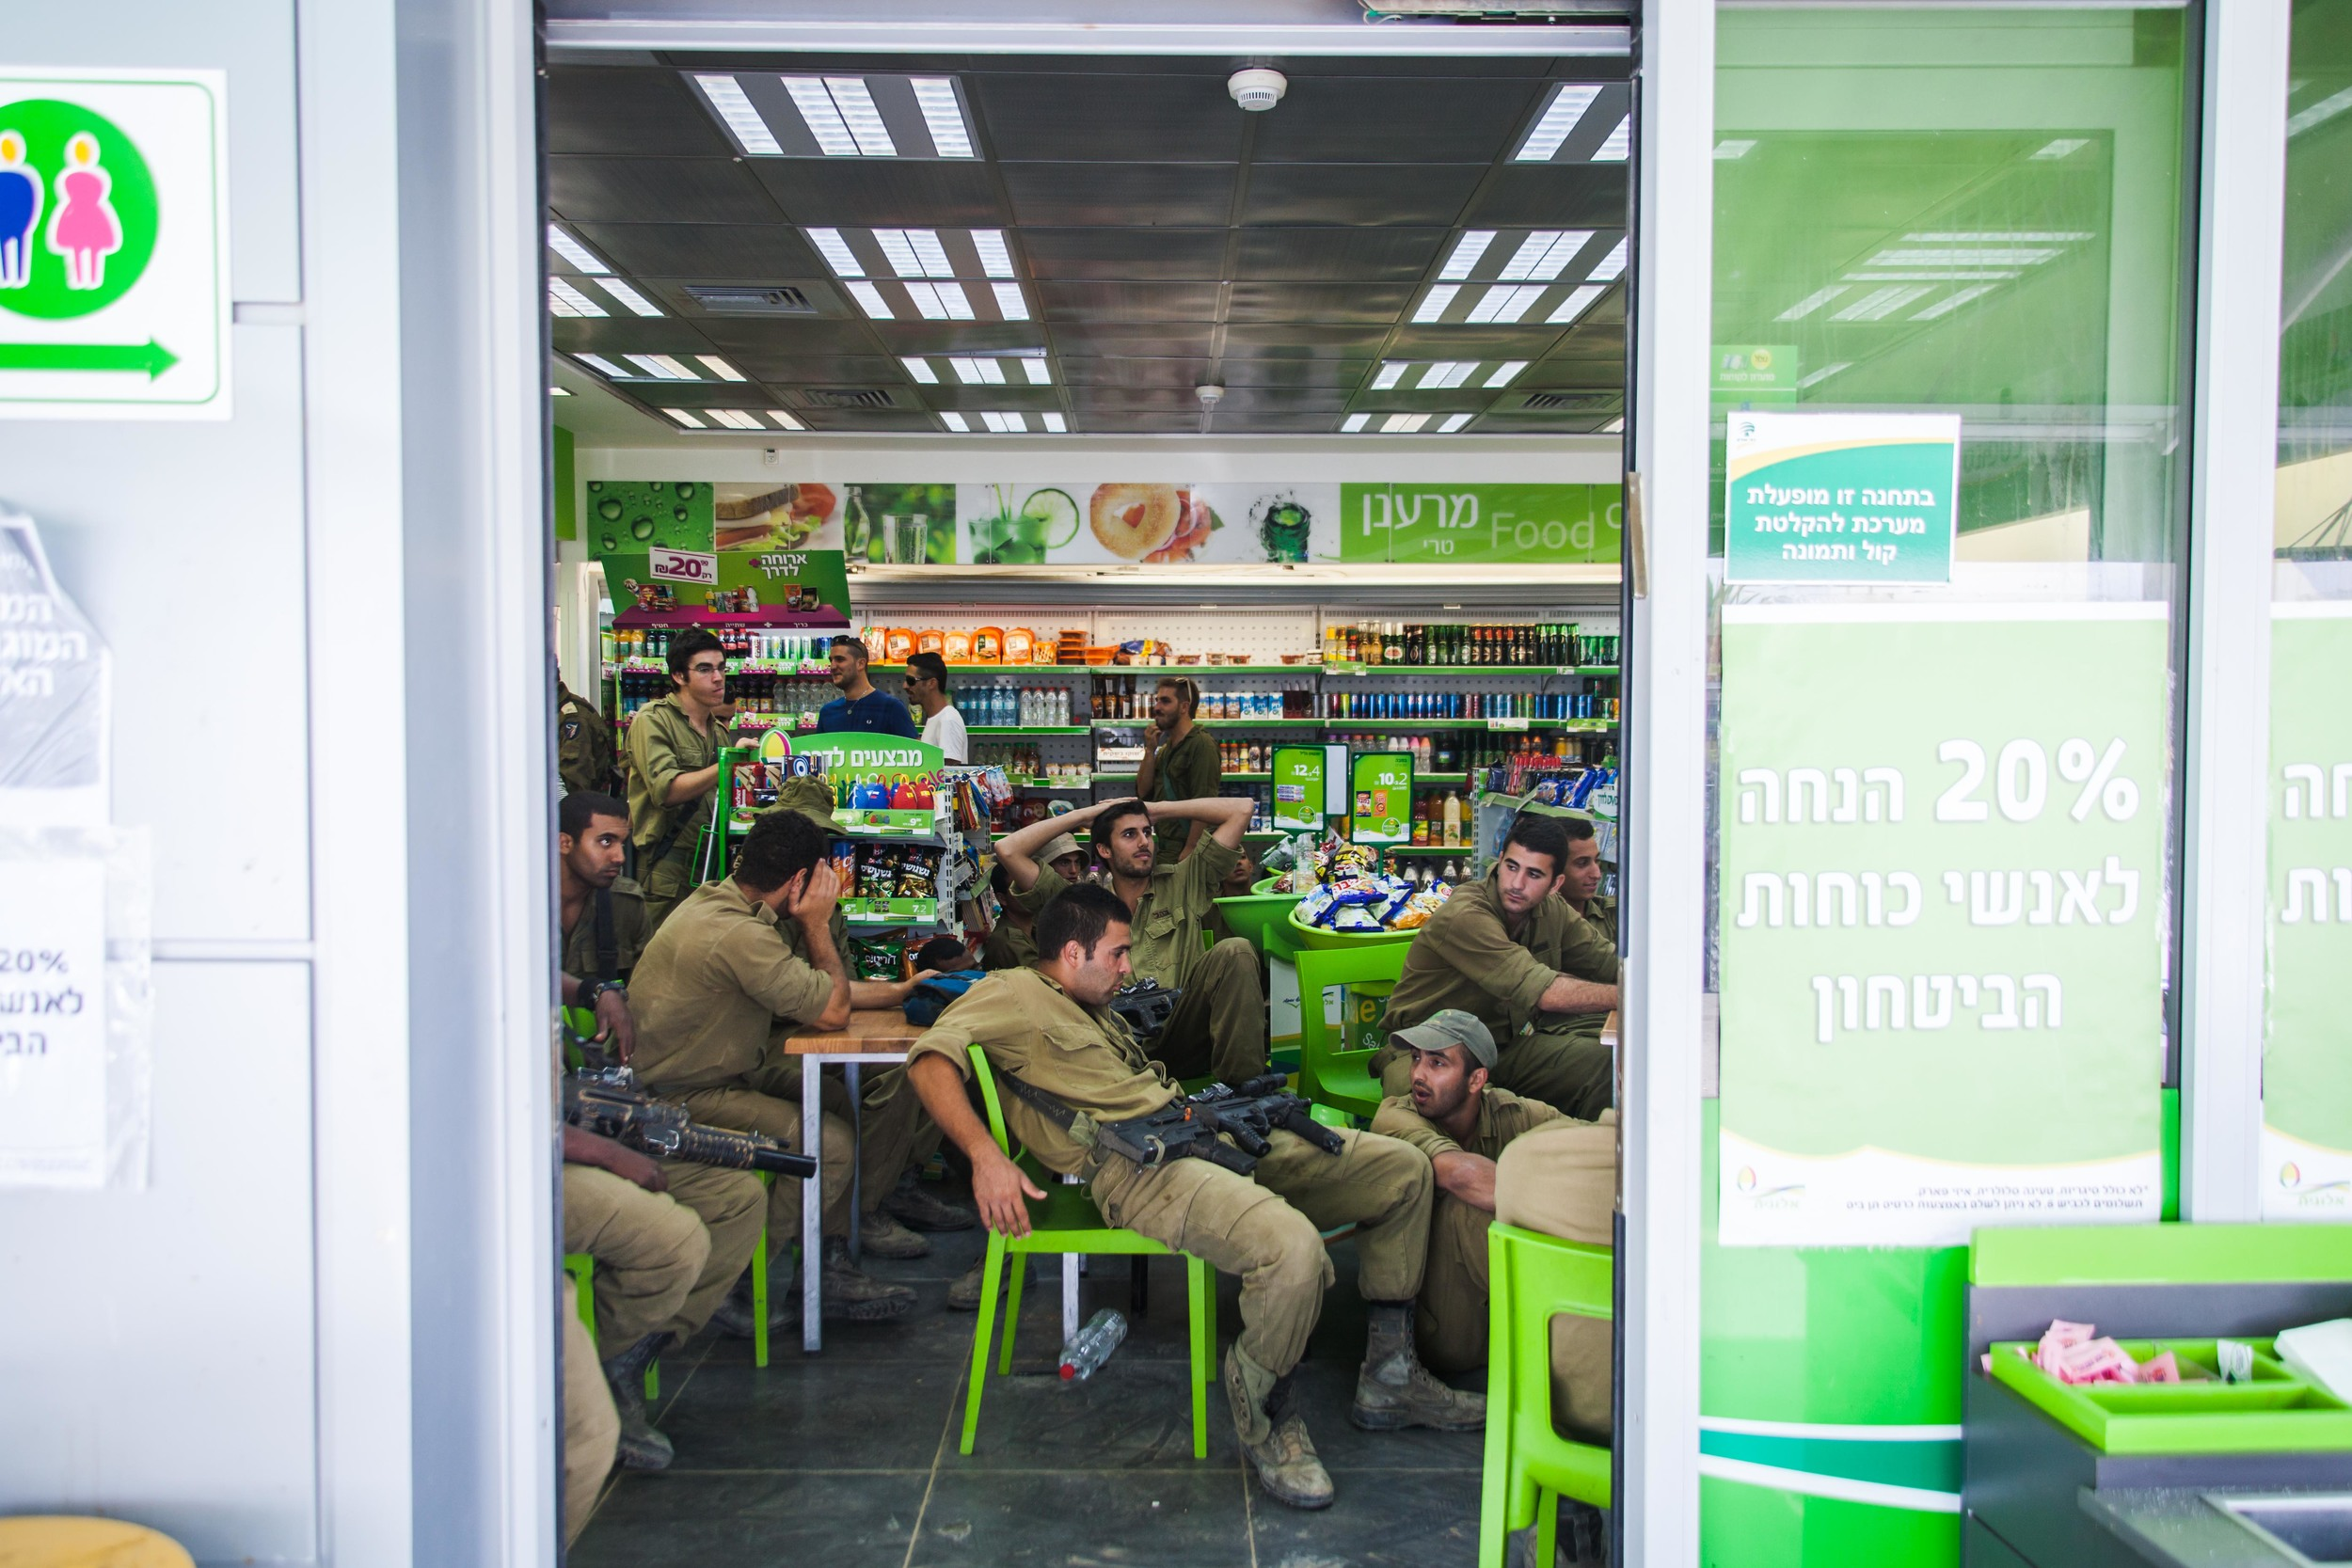 Soldiers watch the news and eat ice-cream in a gas station close to their base on the border of Gaza/Israel.